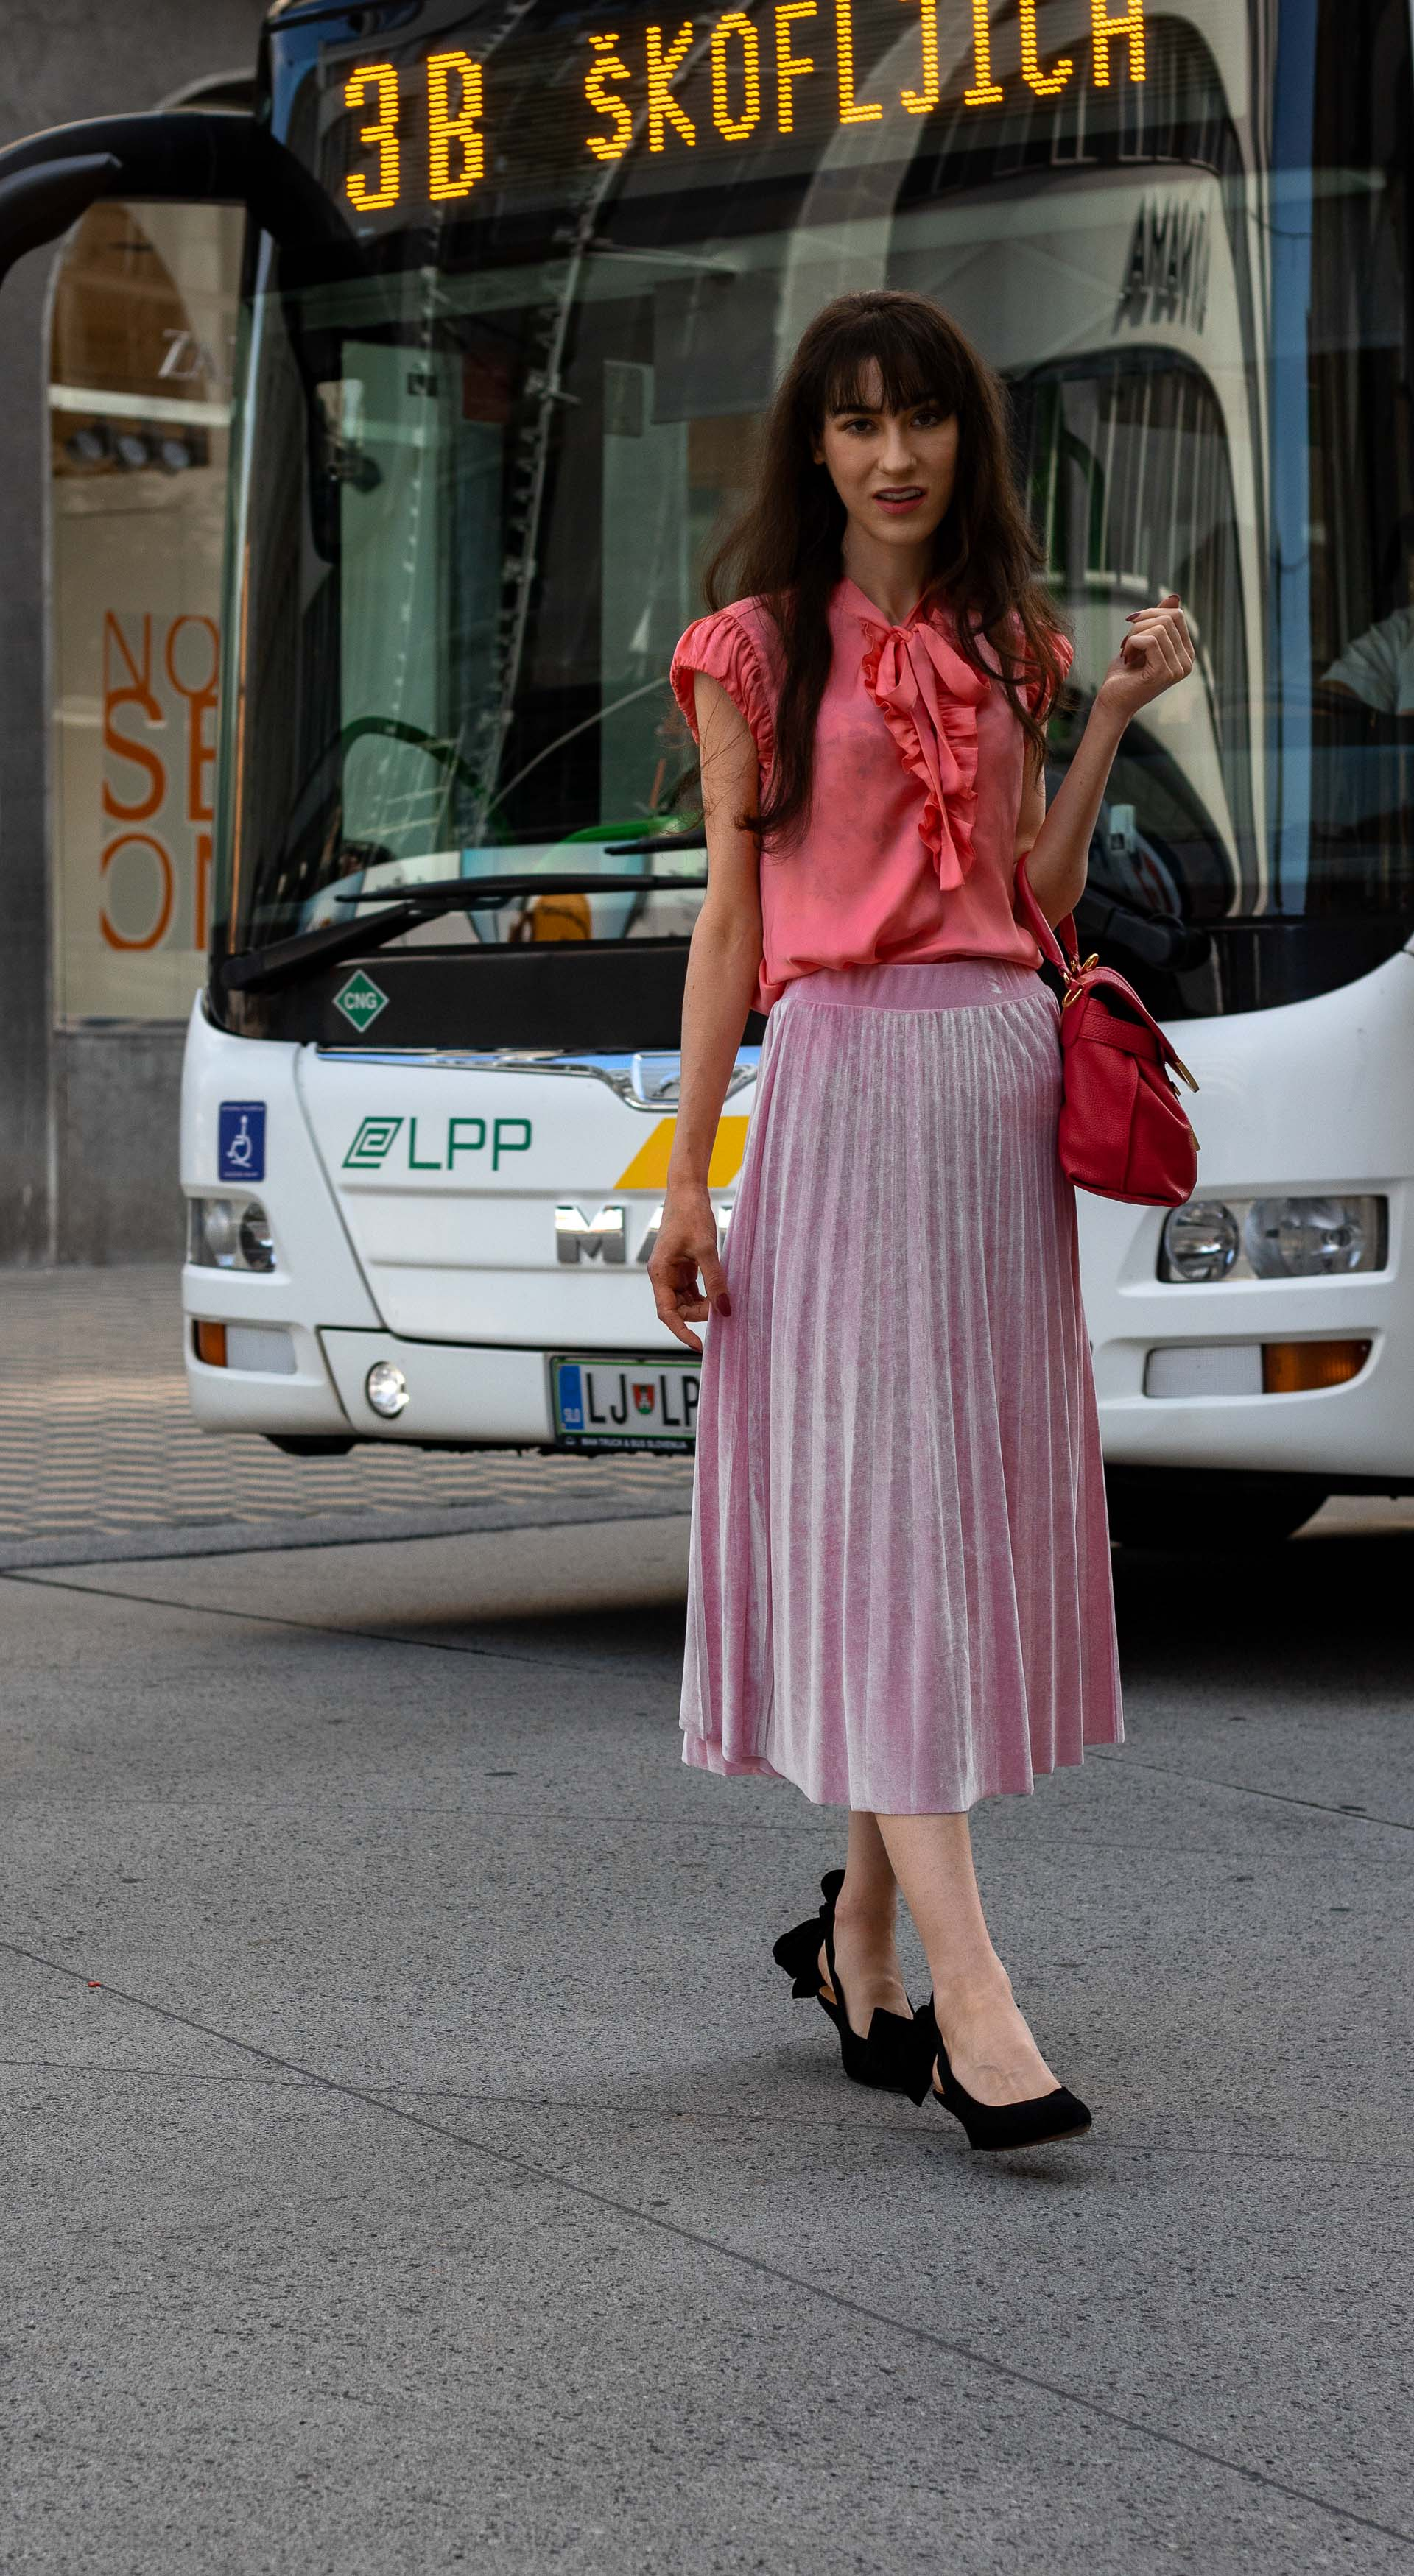 IT Girl Fashion Blogger Veronika Lipar of Brunette from Wall Street wearing coral pink floppy tie blouse pink pleated midi skirt Ganni slingbacks pink top handle bag going to work in summer